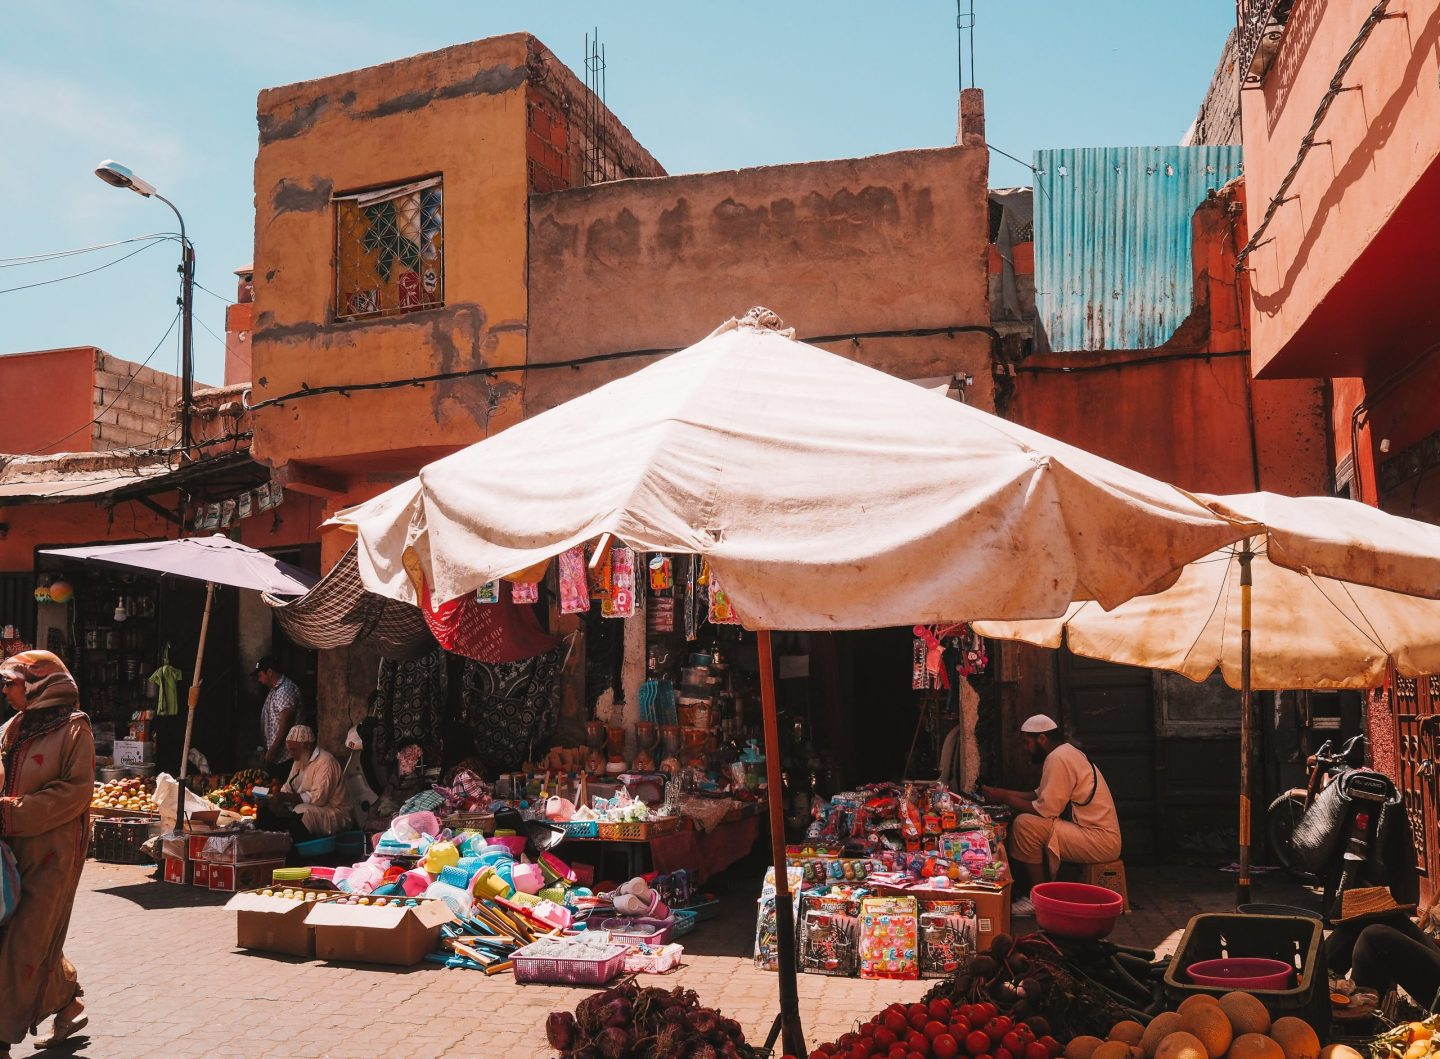 Inside the Kasbah - Marrakesh Itinerary